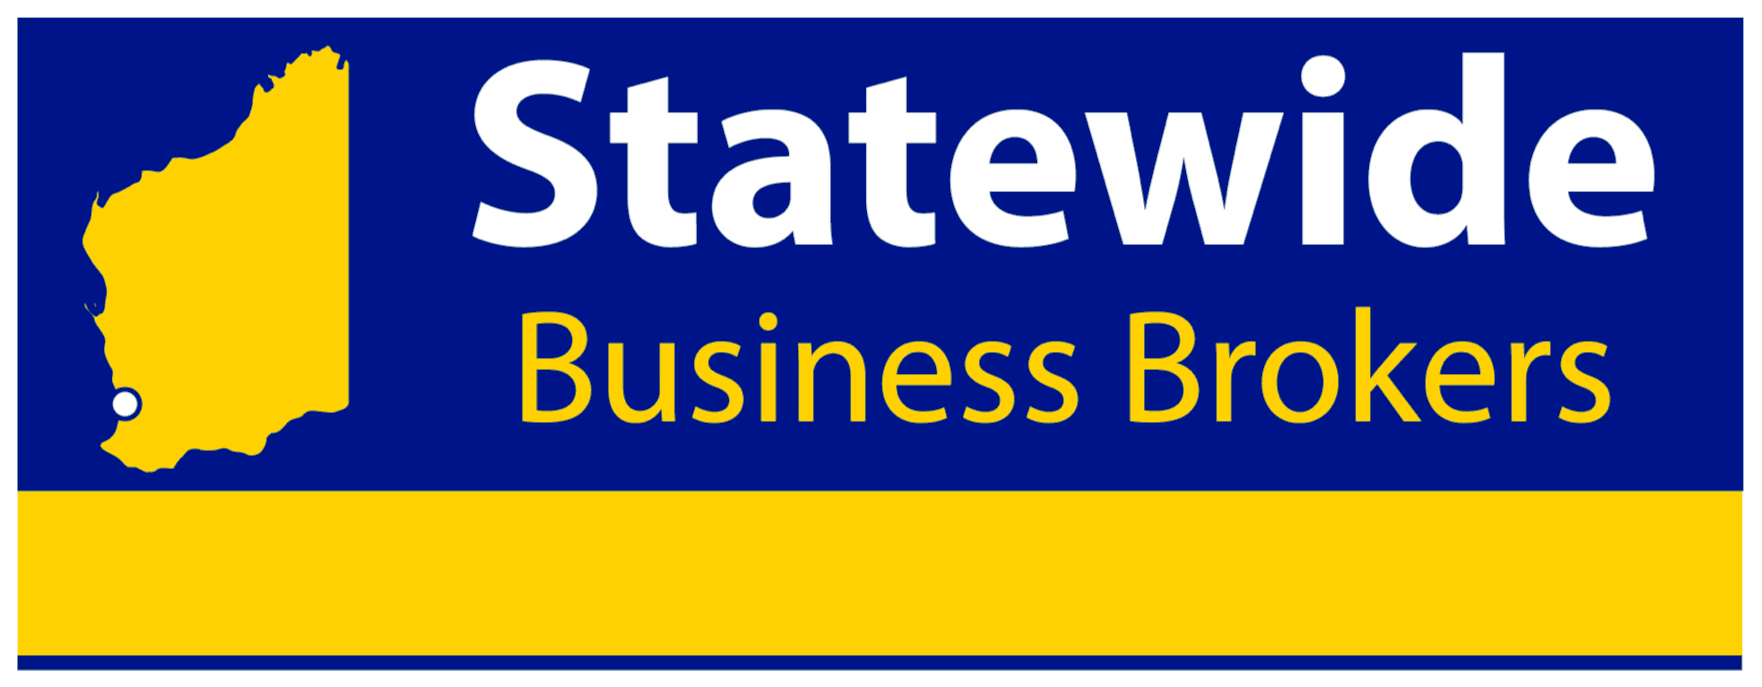 Statewide Business Brokers